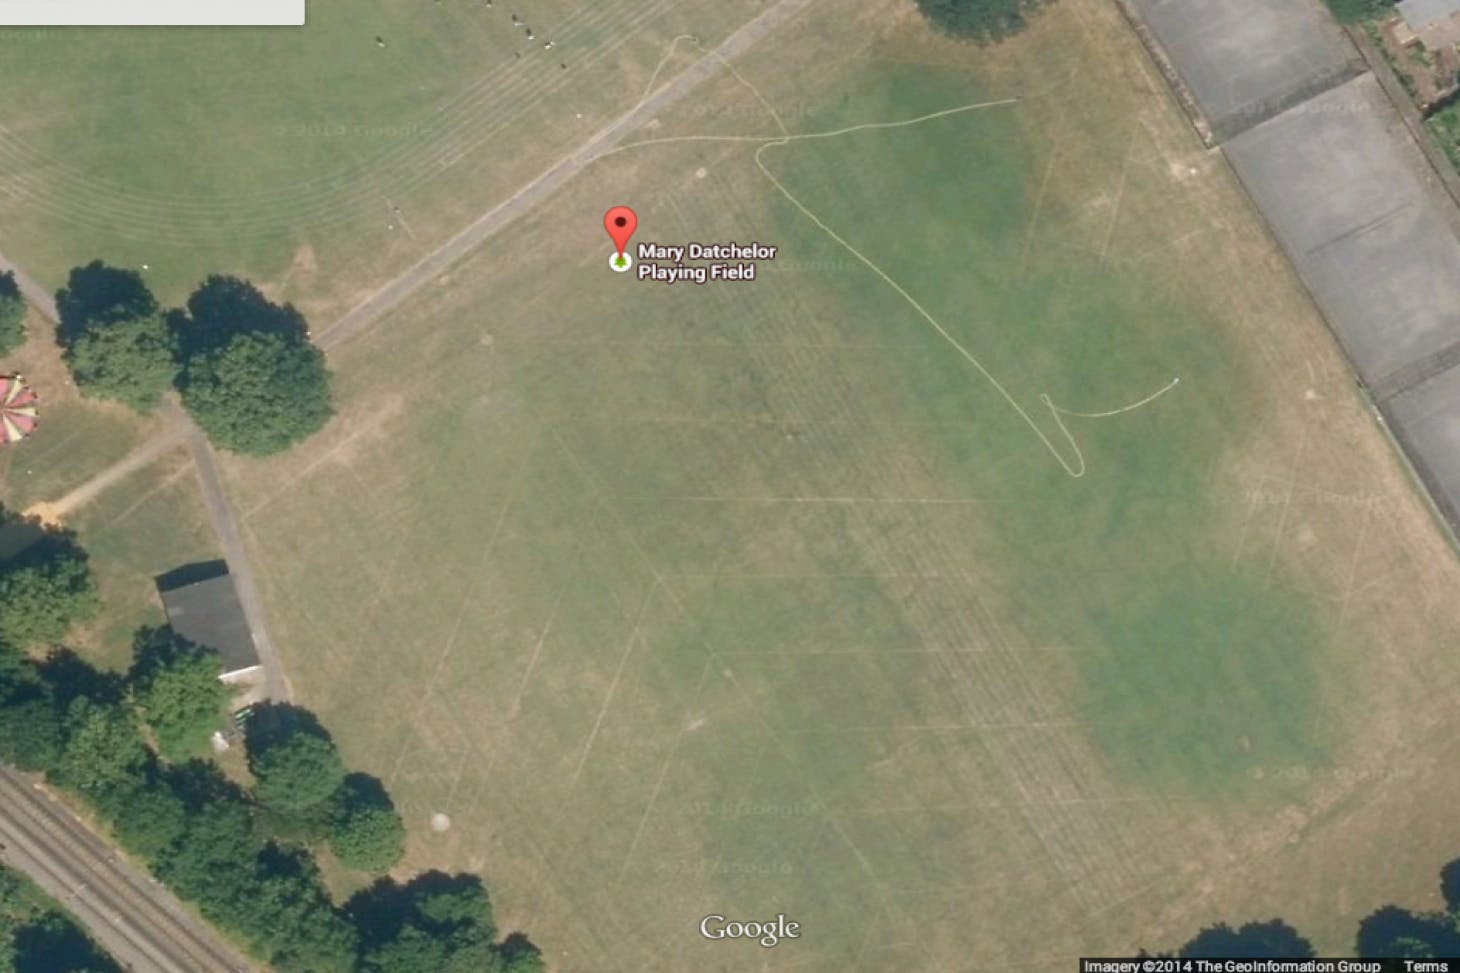 Mary Datchelor Playing Fields (Junior) Union rugby pitch